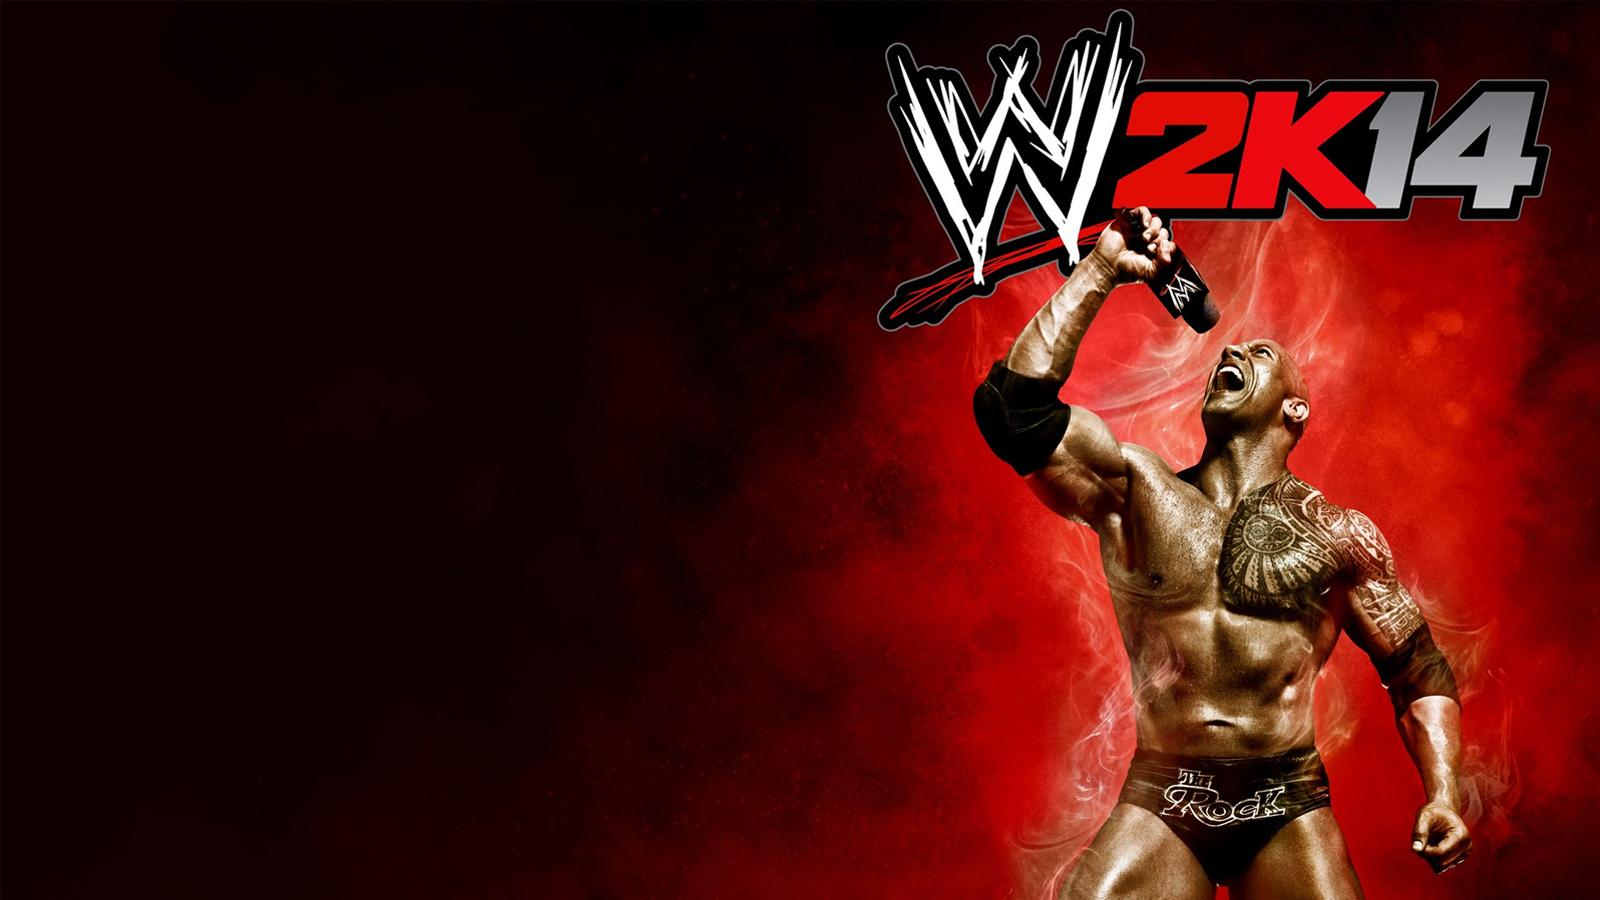 wallpapers wwe 2k14 images